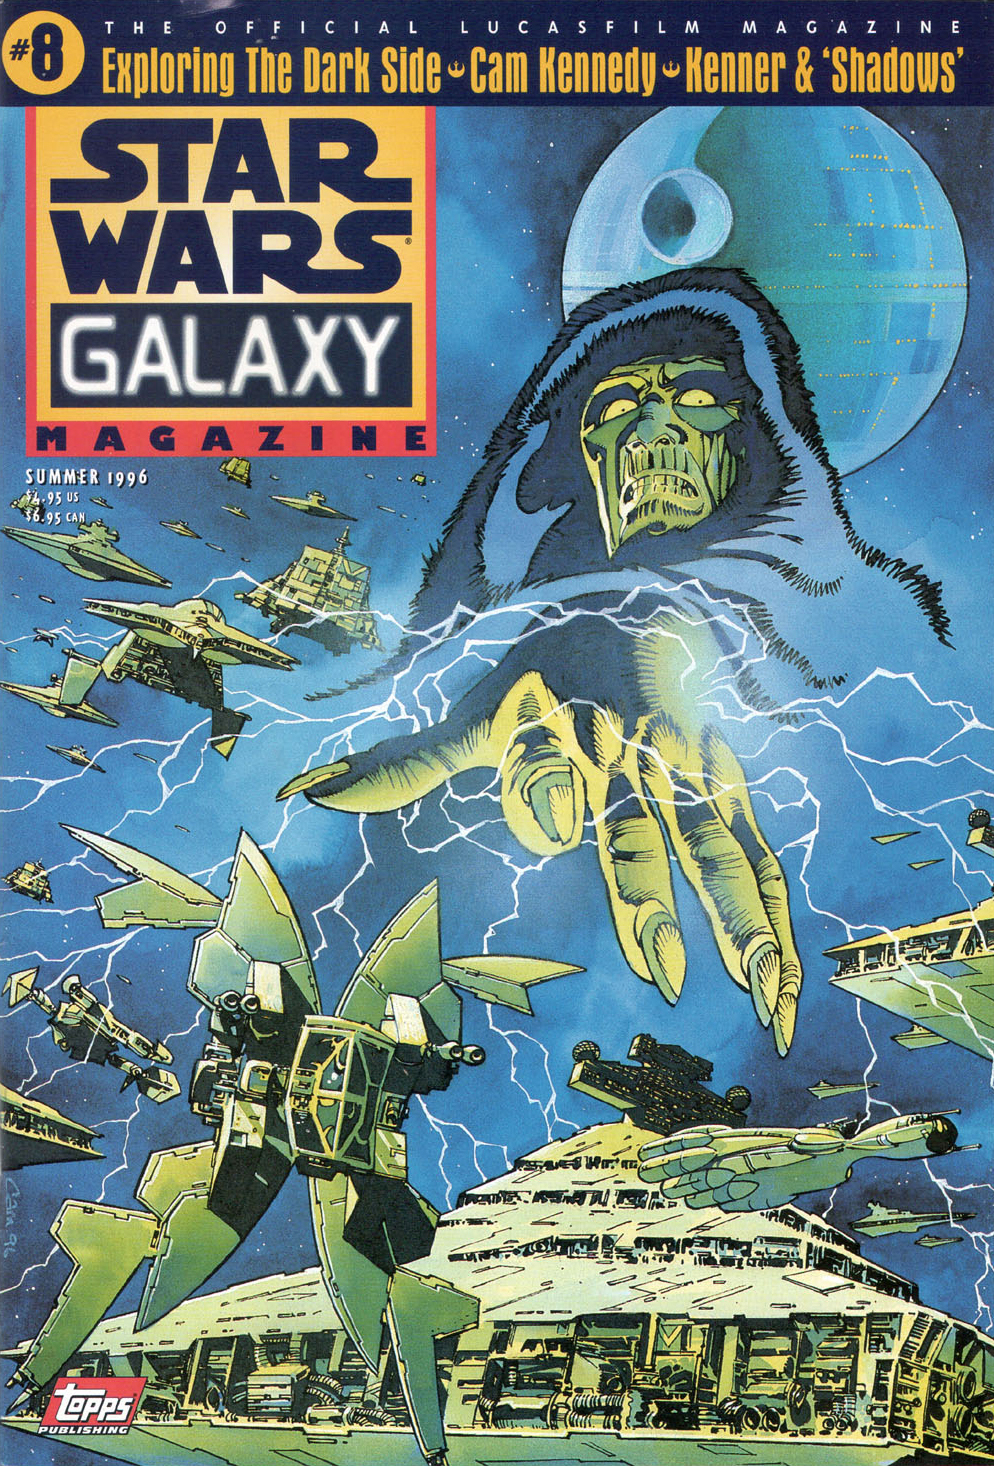 Star Wars Galaxy Magazine 8